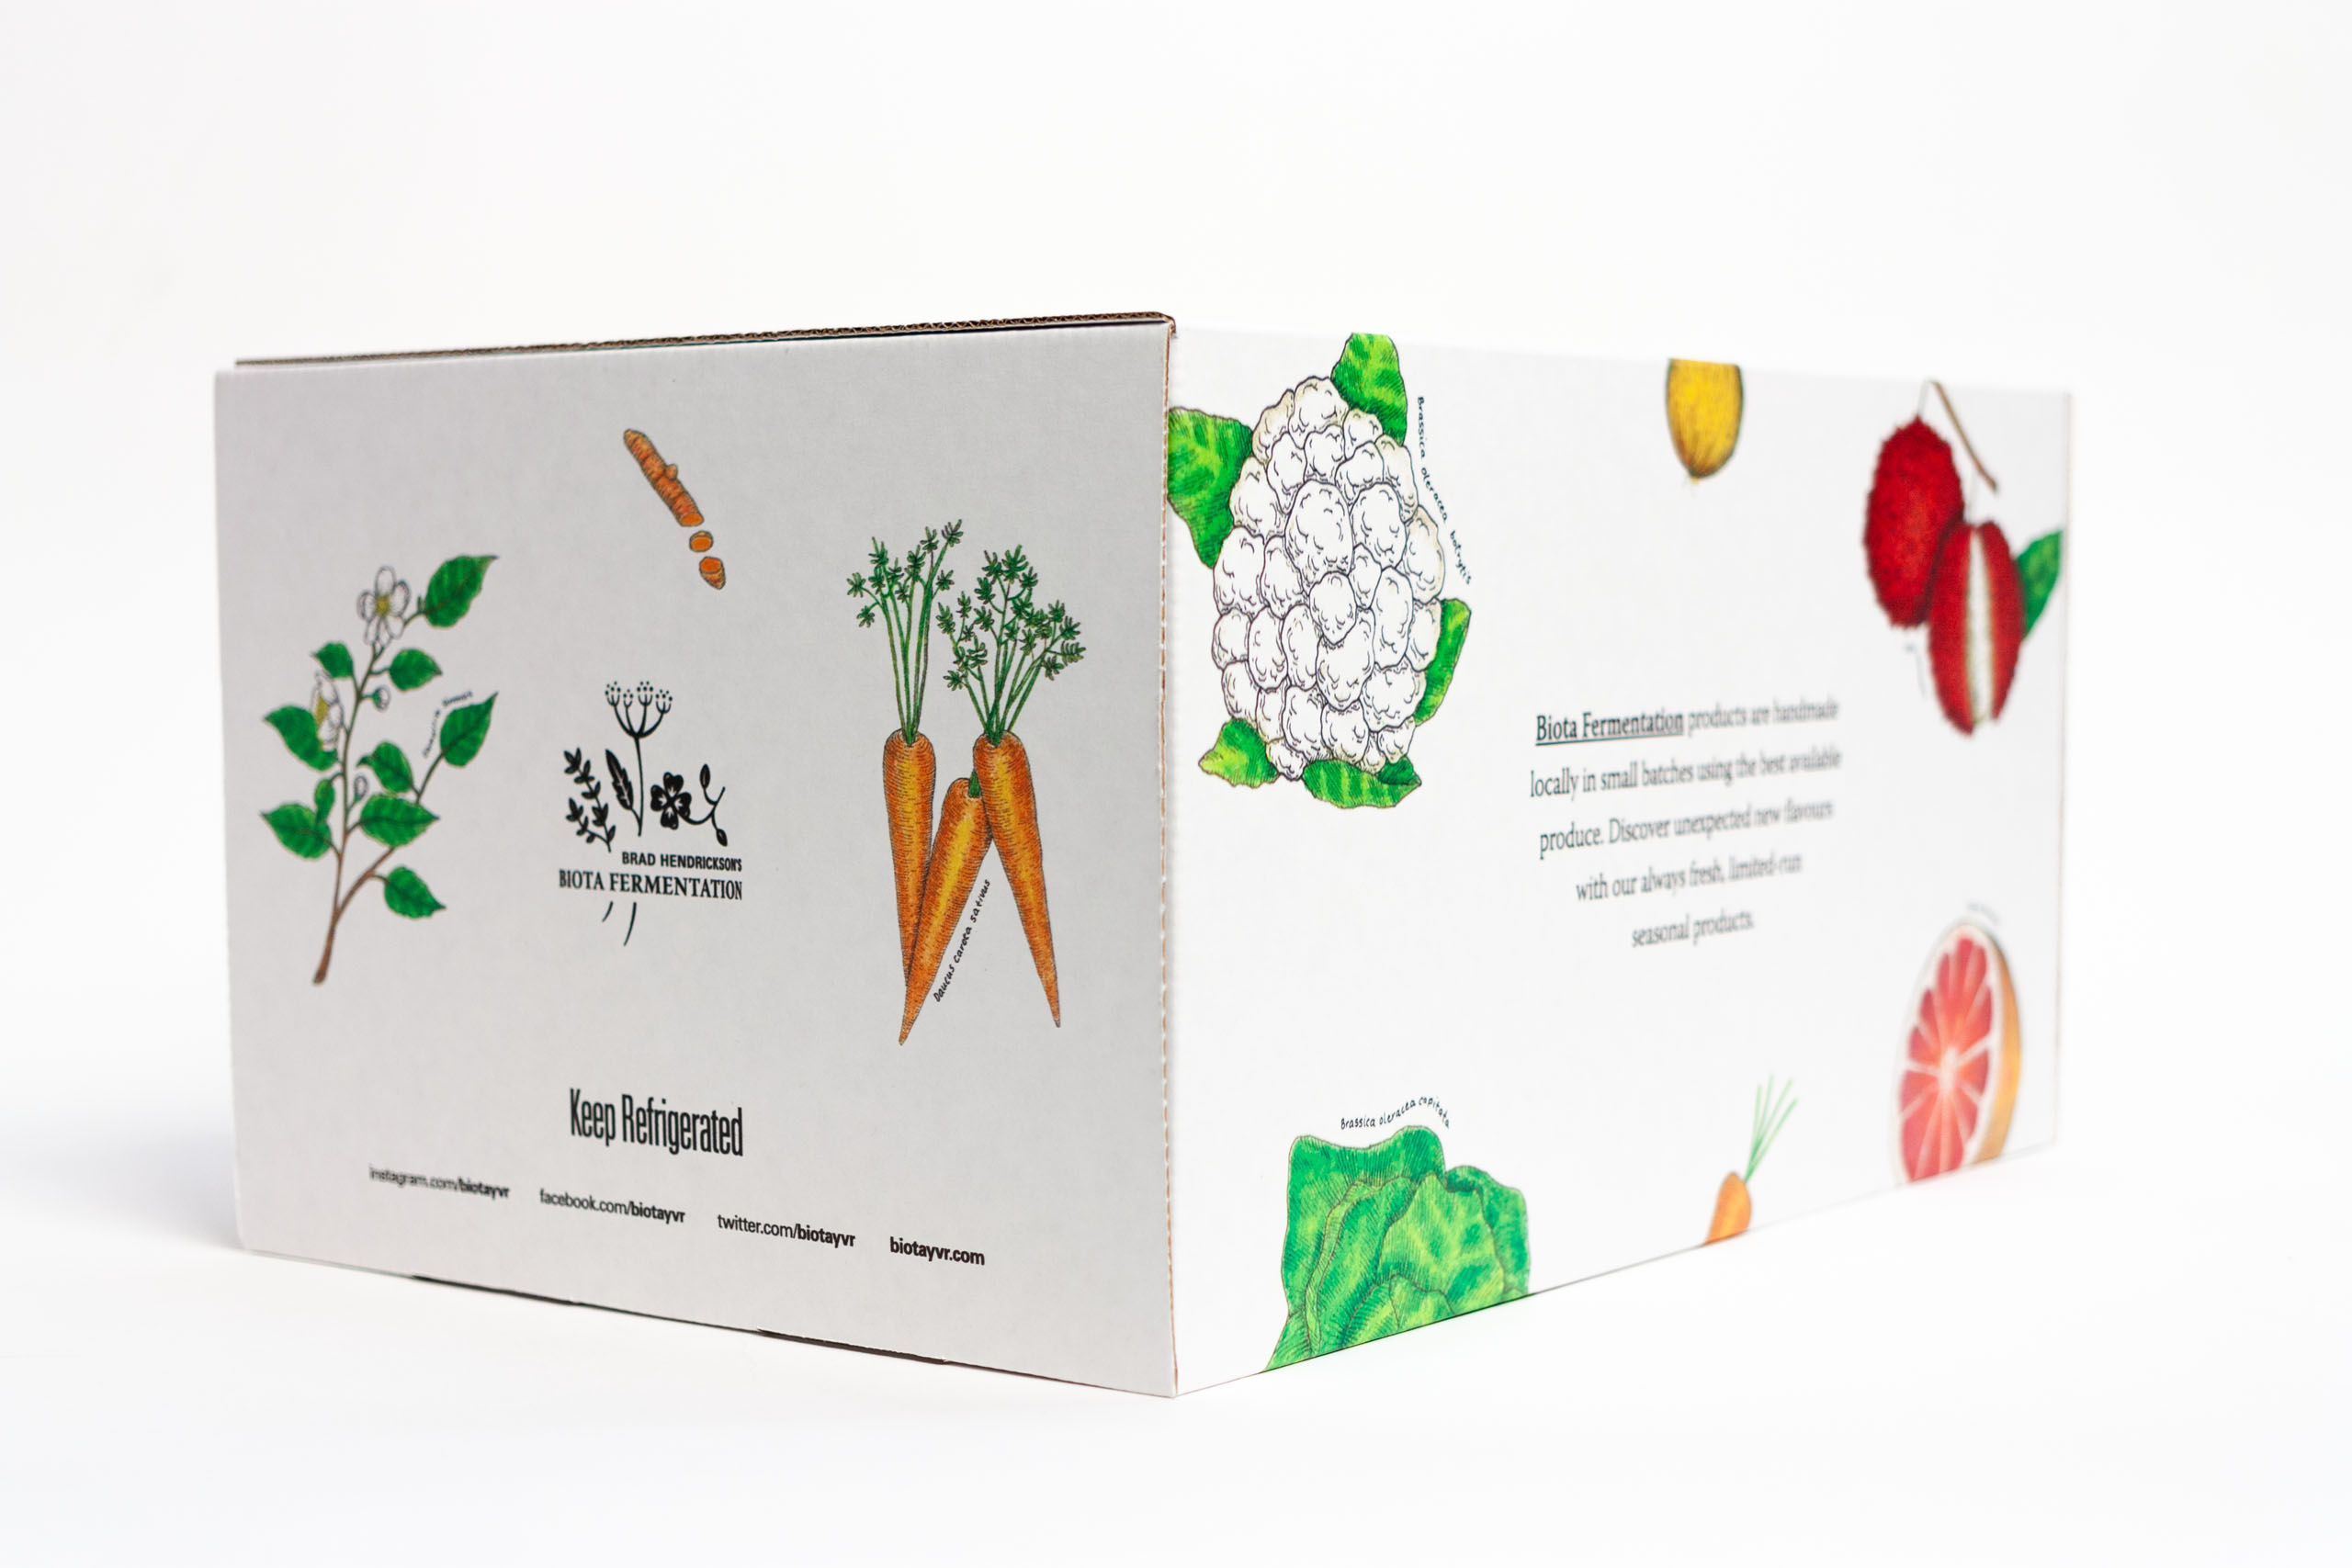 Alternative side of BIota Giftbox showcasing the side panel design of bouquet logo surrounded by carrot and tea illustration — by Yagnyuk.